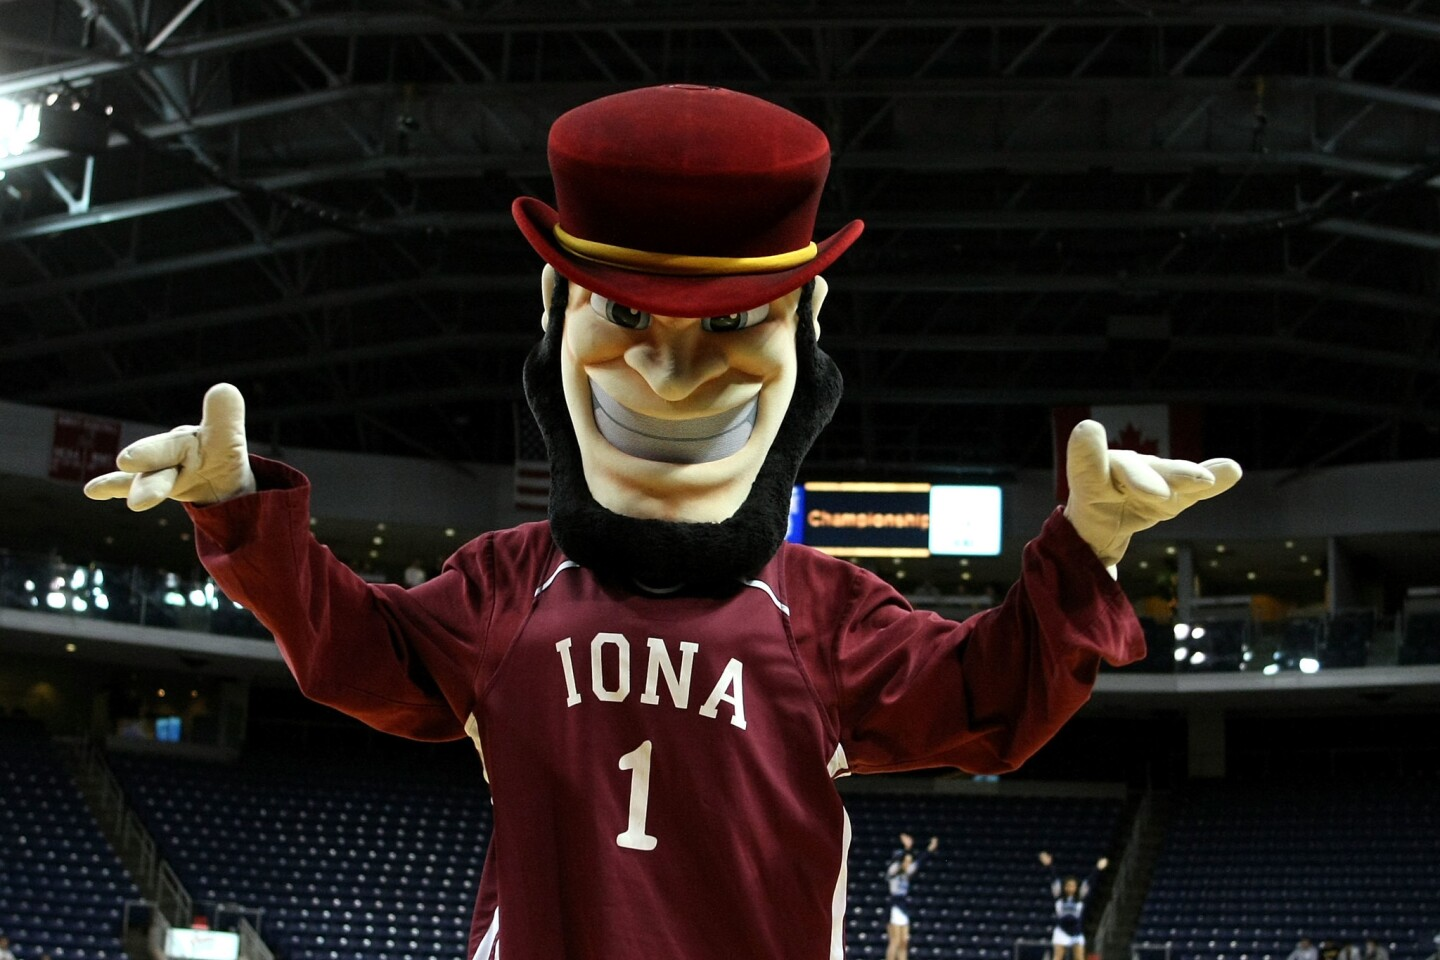 """Iona's nickname is the Gaels, a nod to the New Rochelle, NY, school's founders, the Irish Christian Brothers. The school website describes Killian as """"spunky,"""" but the adjective that more likely comes to mind for most people would be """"deranged."""""""